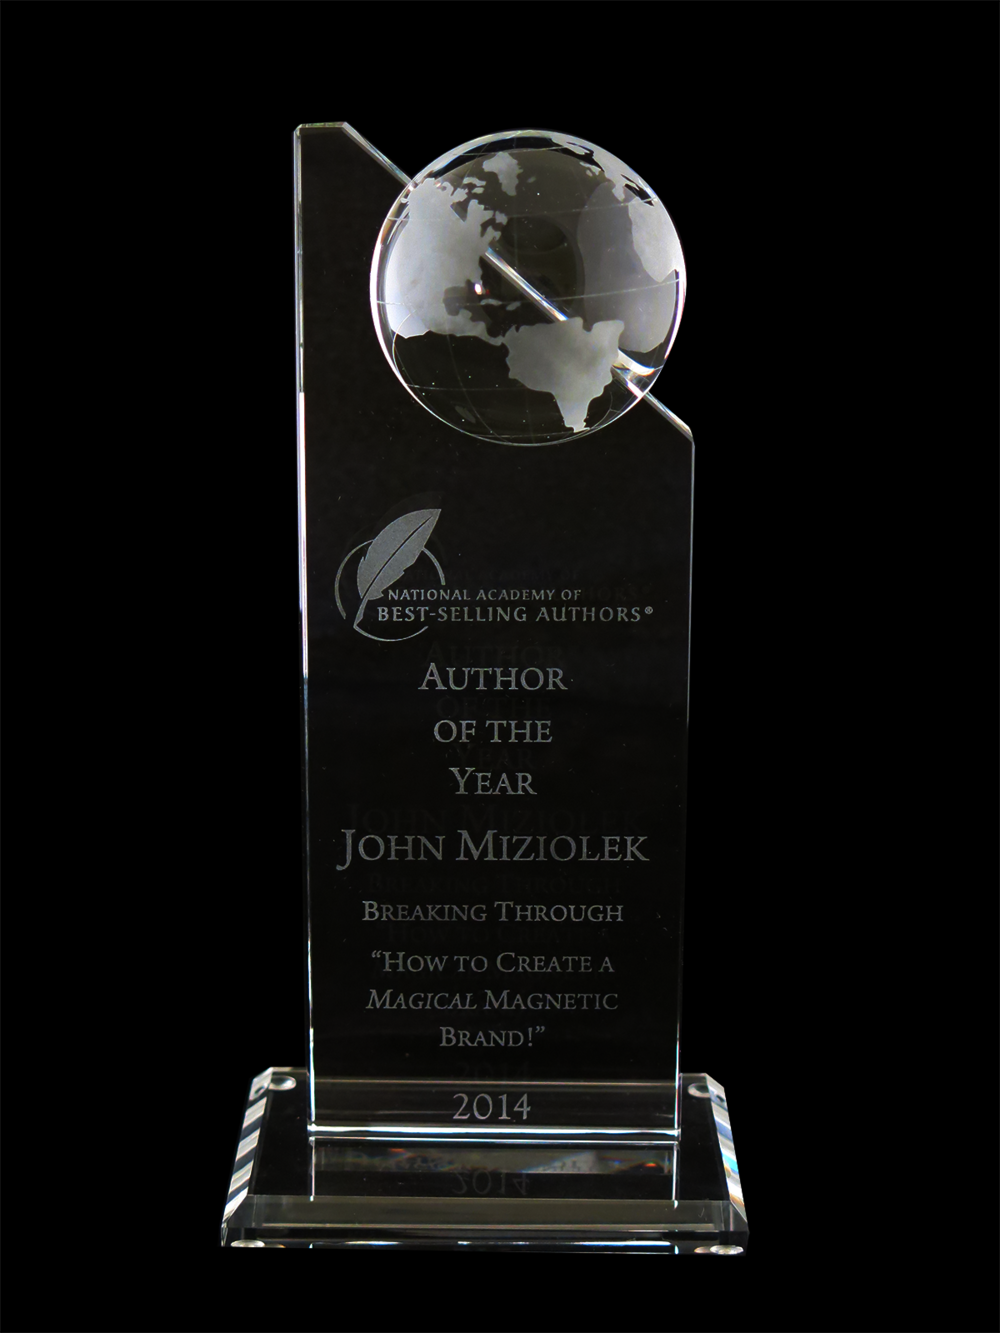 Author of the Year   Award  from the National Academy of Best Selling Authors